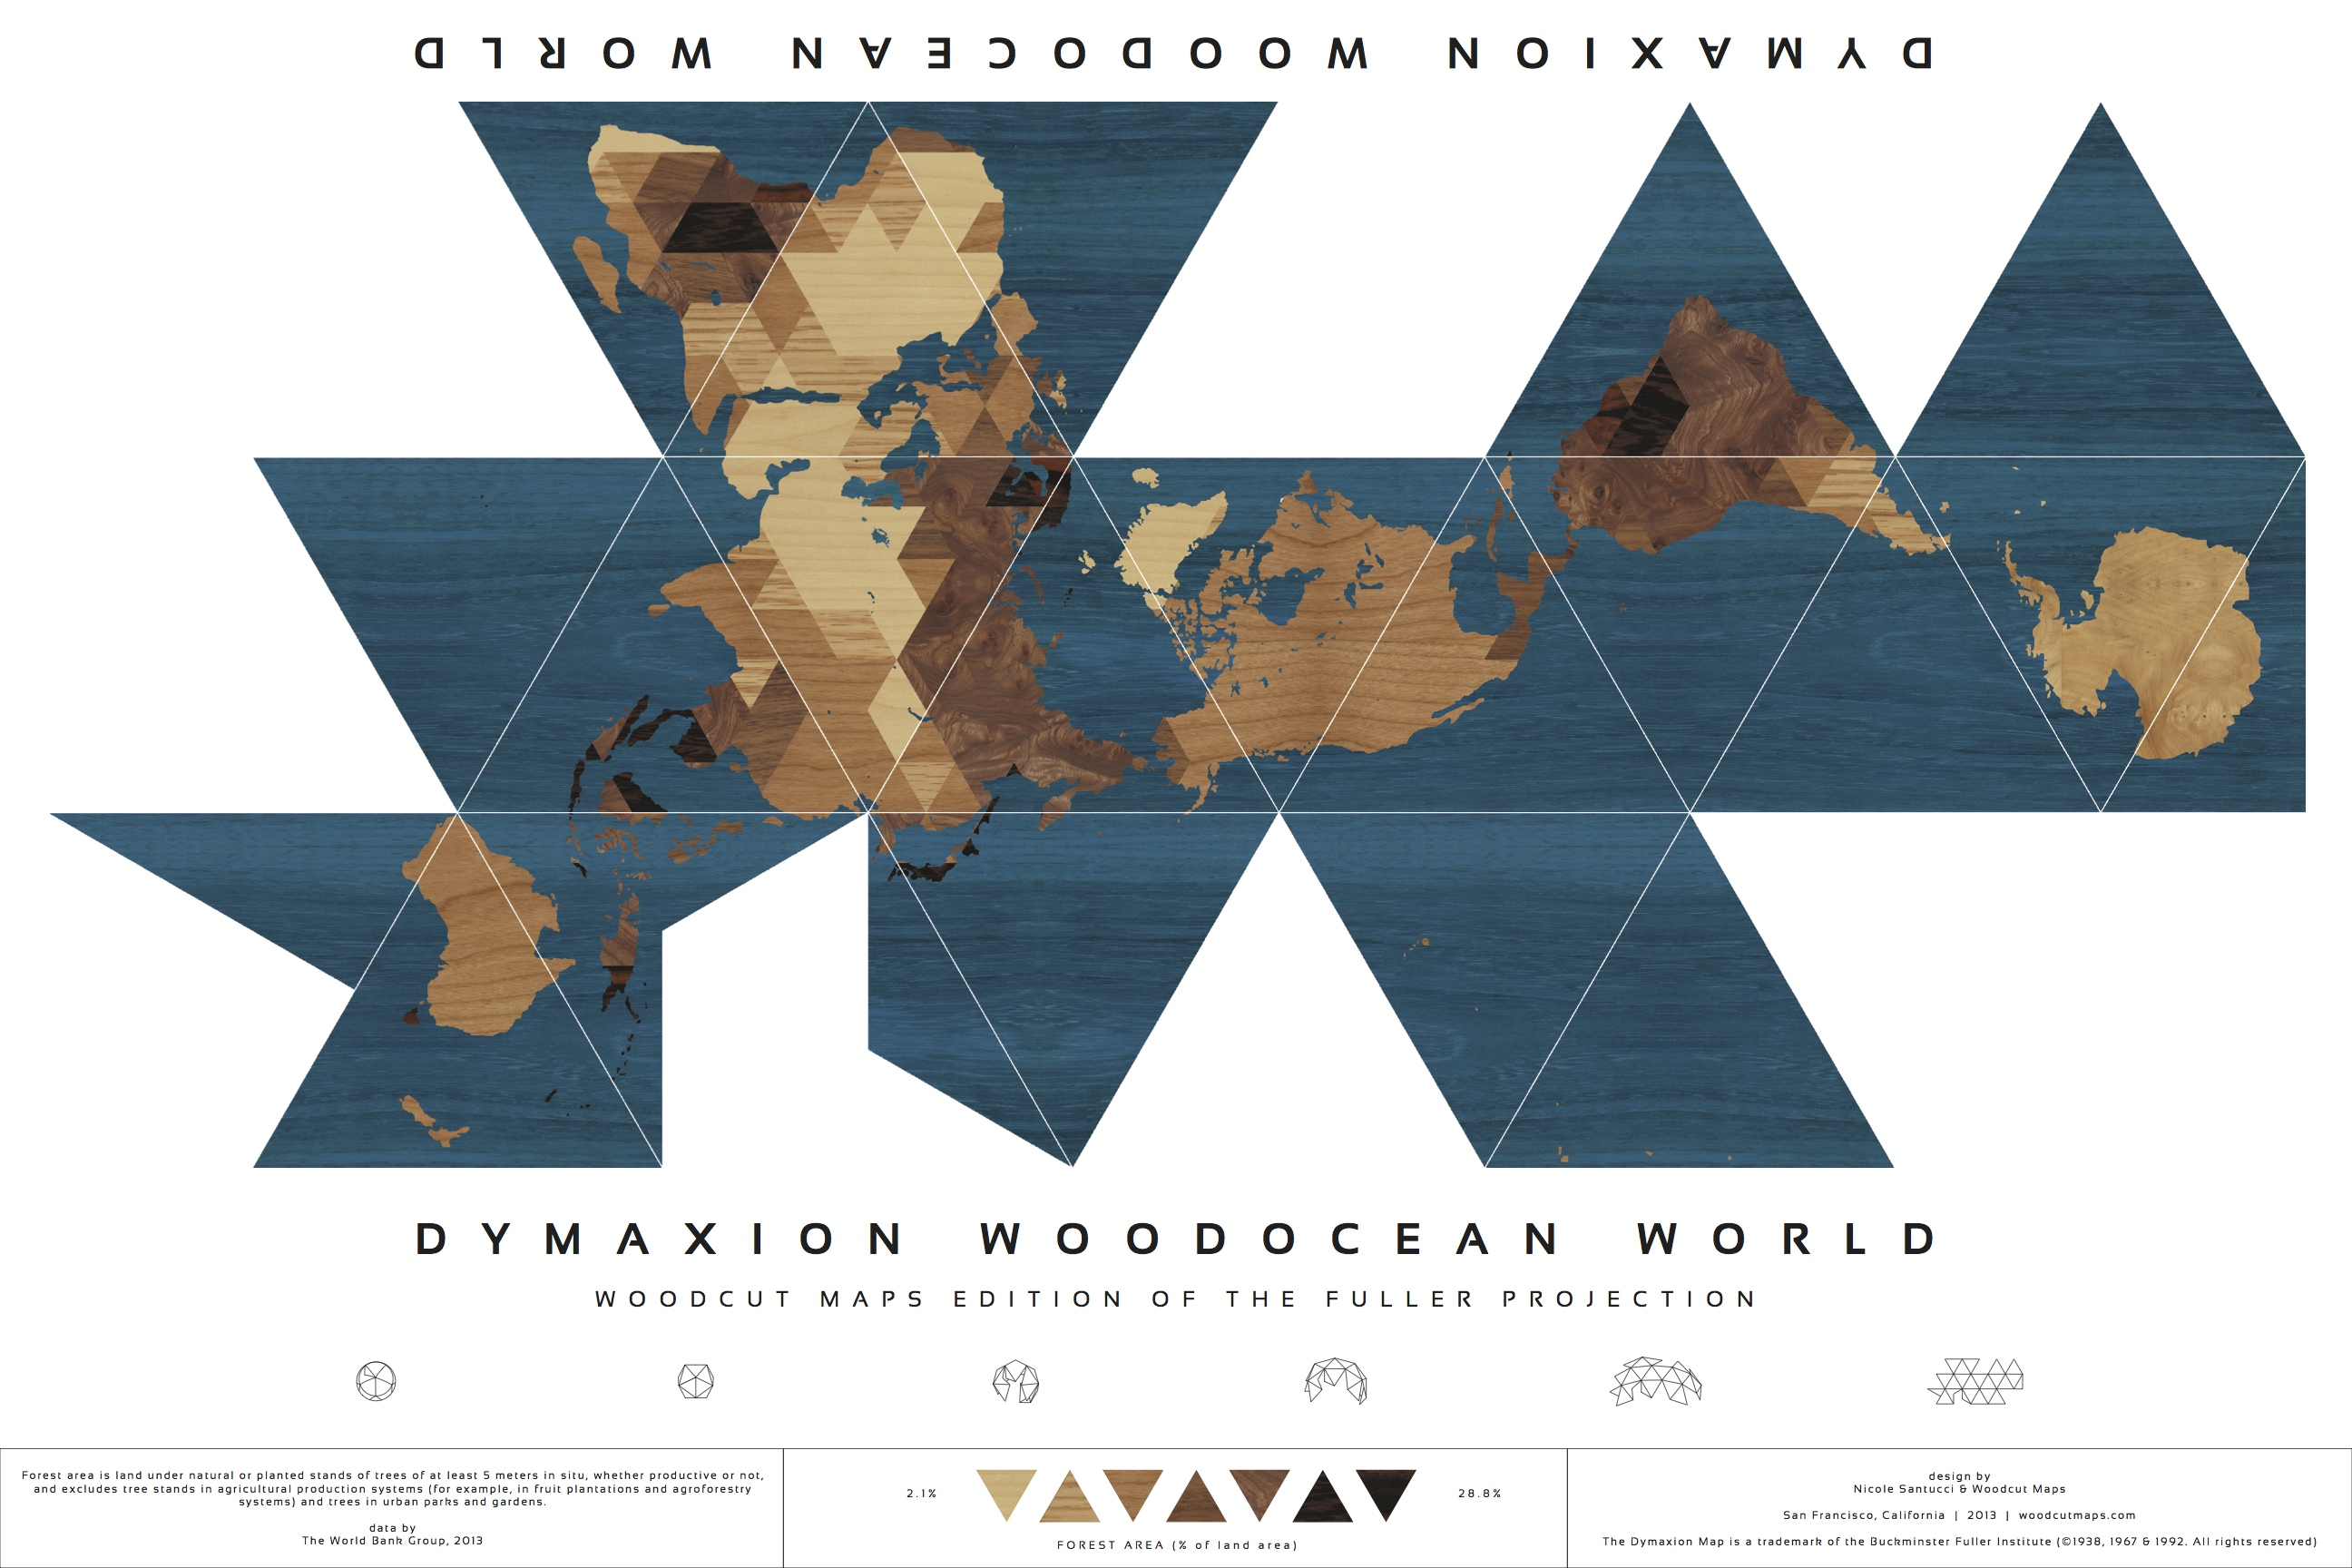 Celebrating unusual maps the winning dymaxion redux and cahills the dymaxion map is presented as a more accurate competitor to the popular mercator projection which distorts the sizes of continents gumiabroncs Images